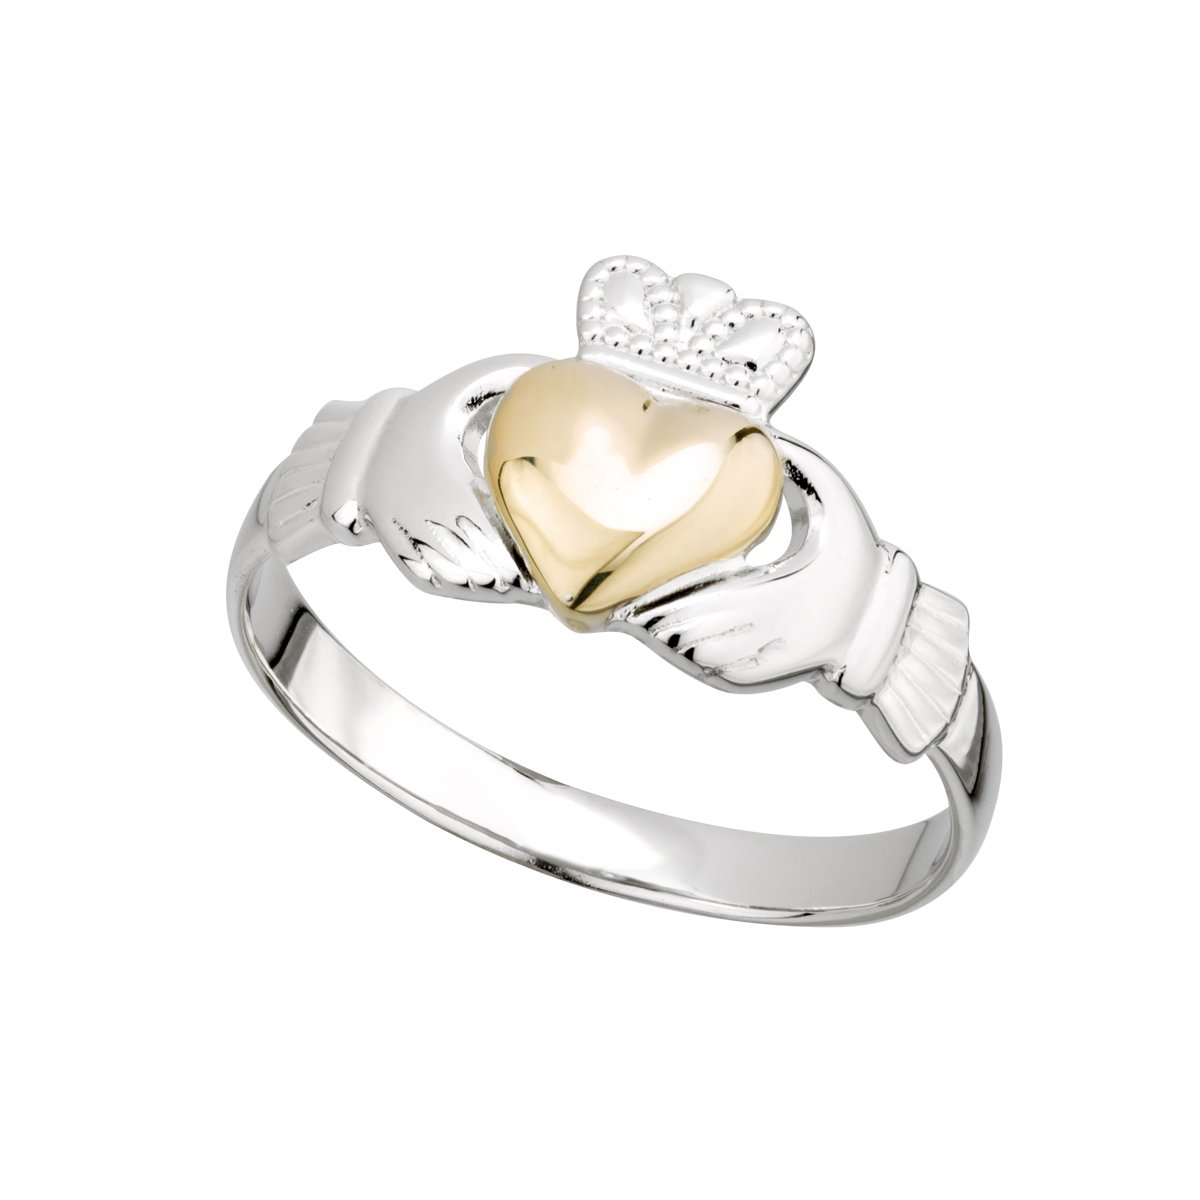 Womens Claddagh Ring Sterling Silver & 10K Gold Size 5.5 Irish Made